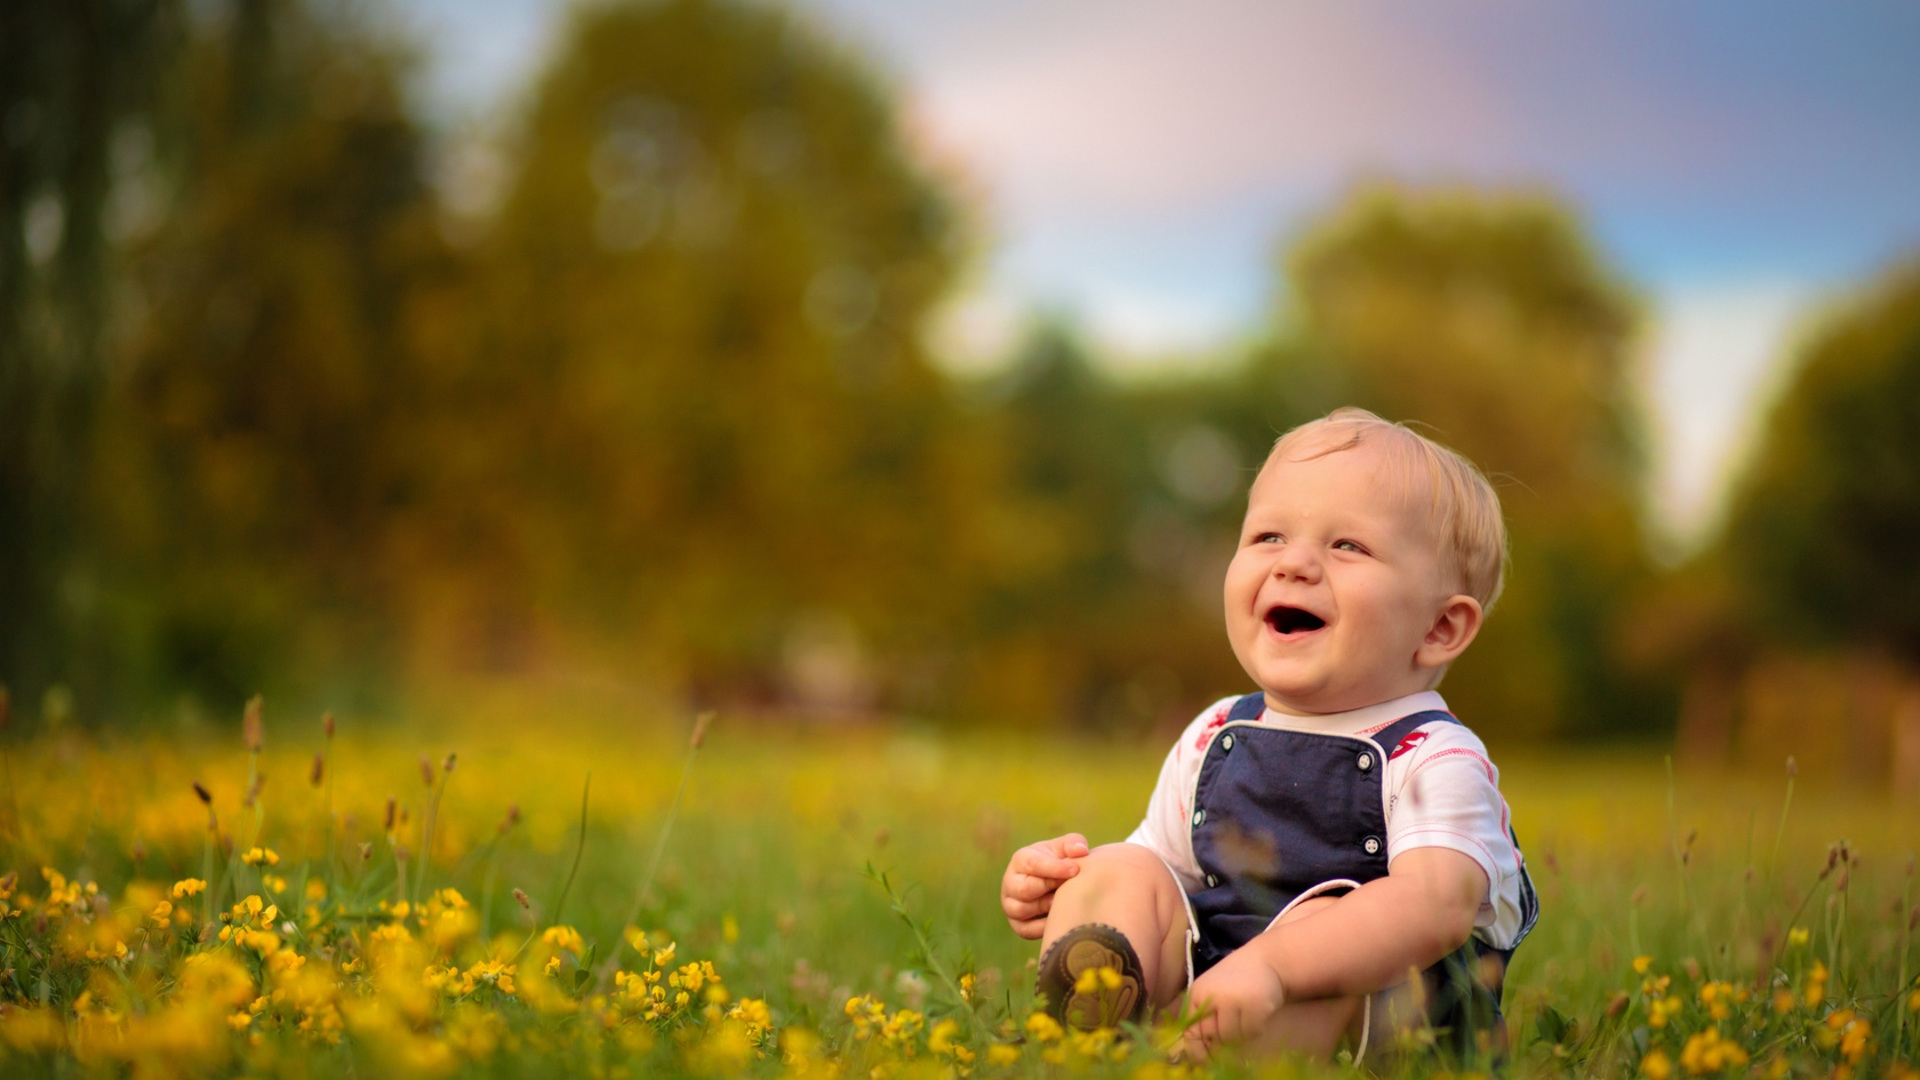 Baby Wallpapers cute laugh